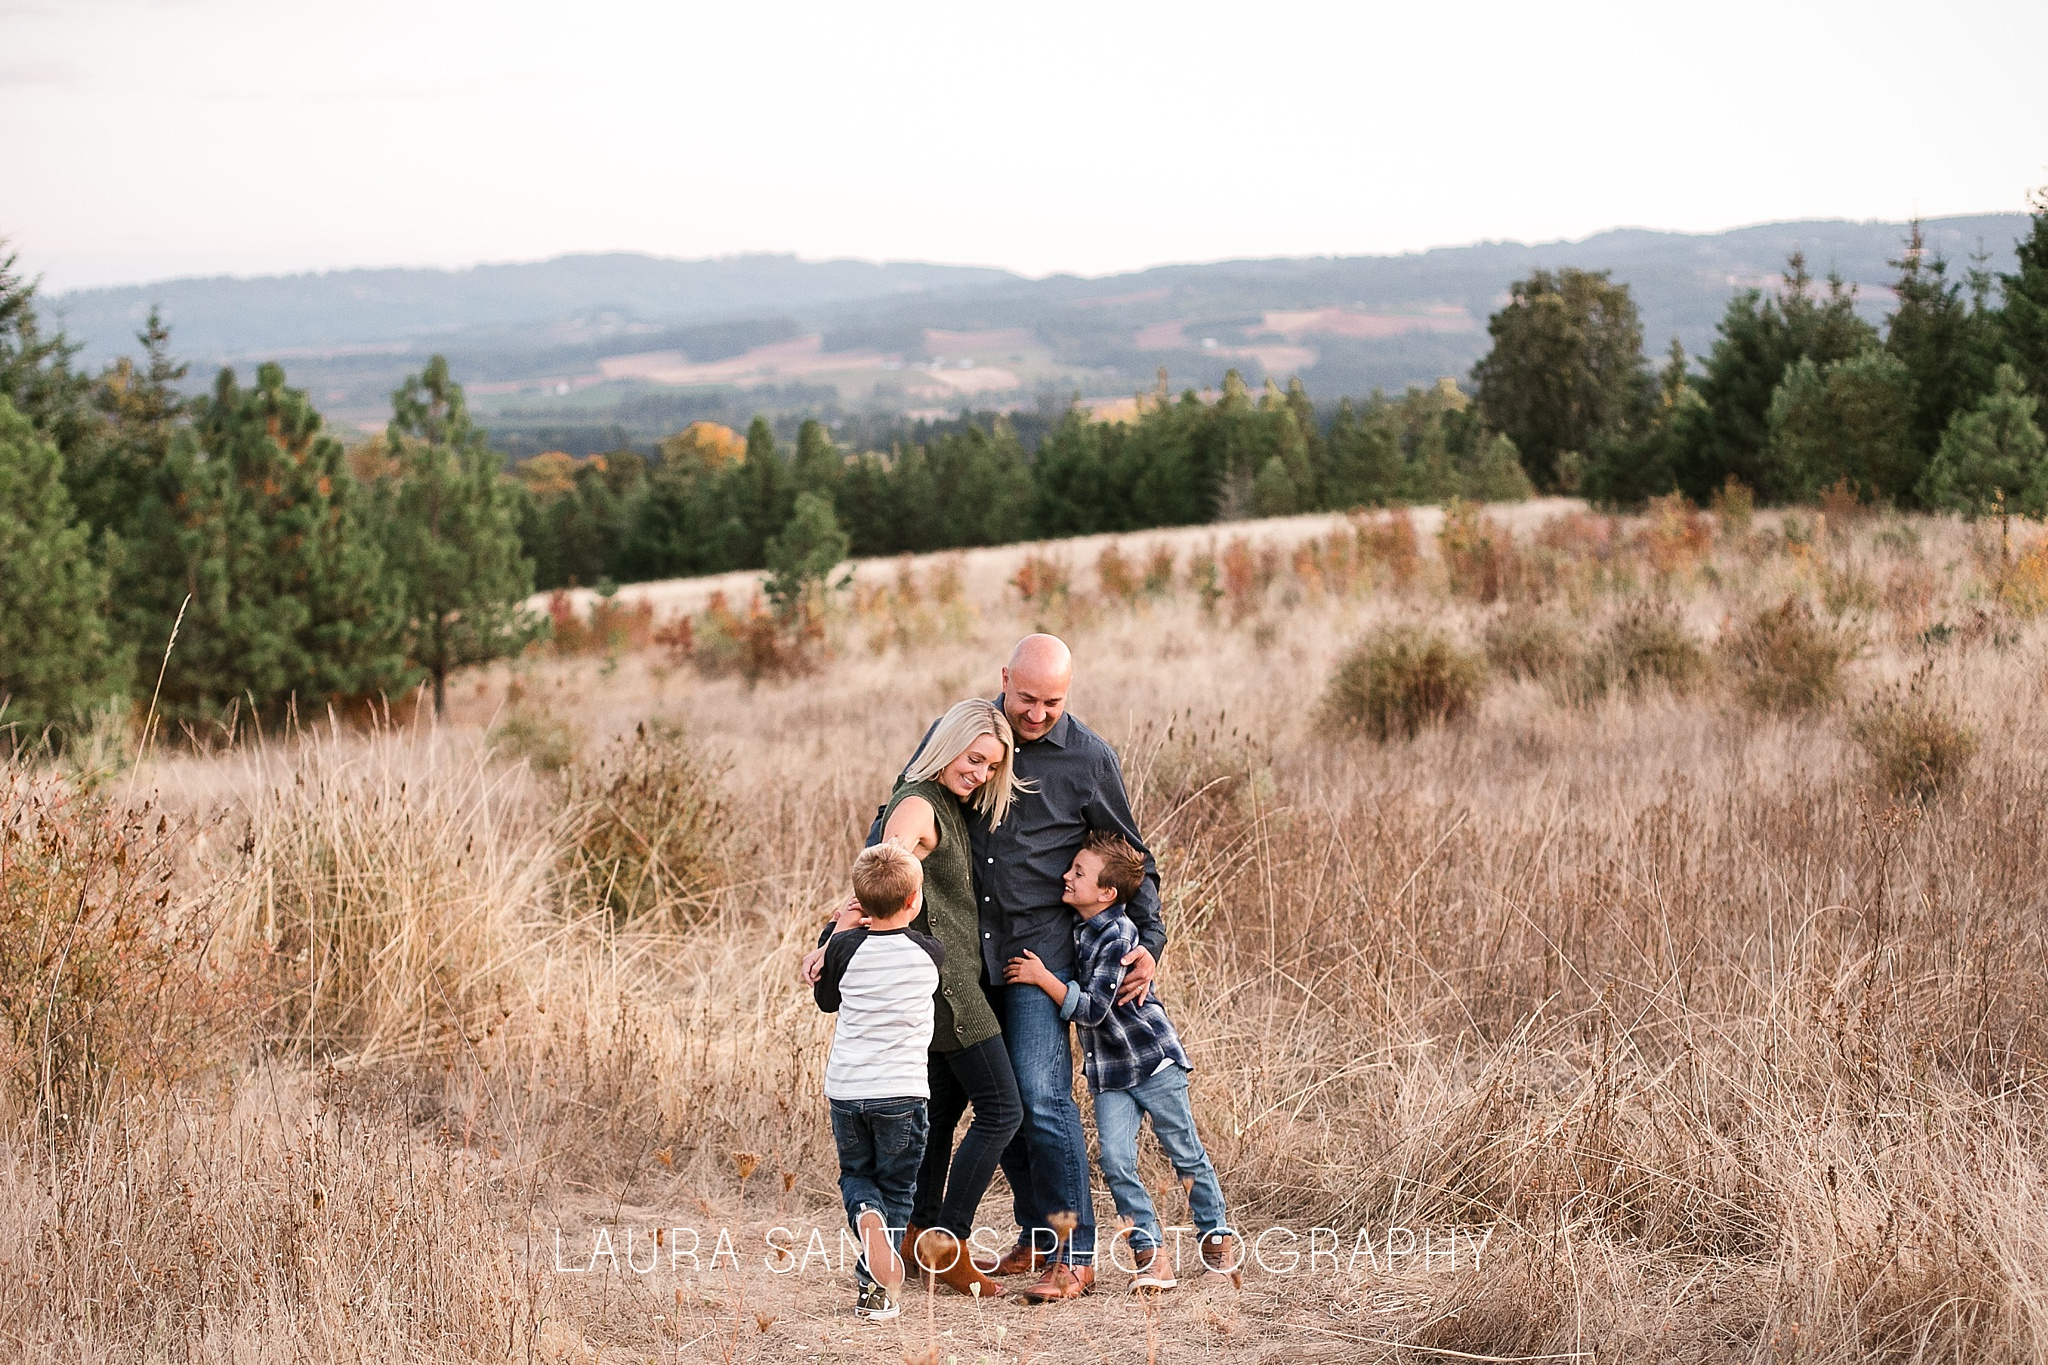 Laura Santos Photography Portland Oregon Family Photographer_0408.jpg